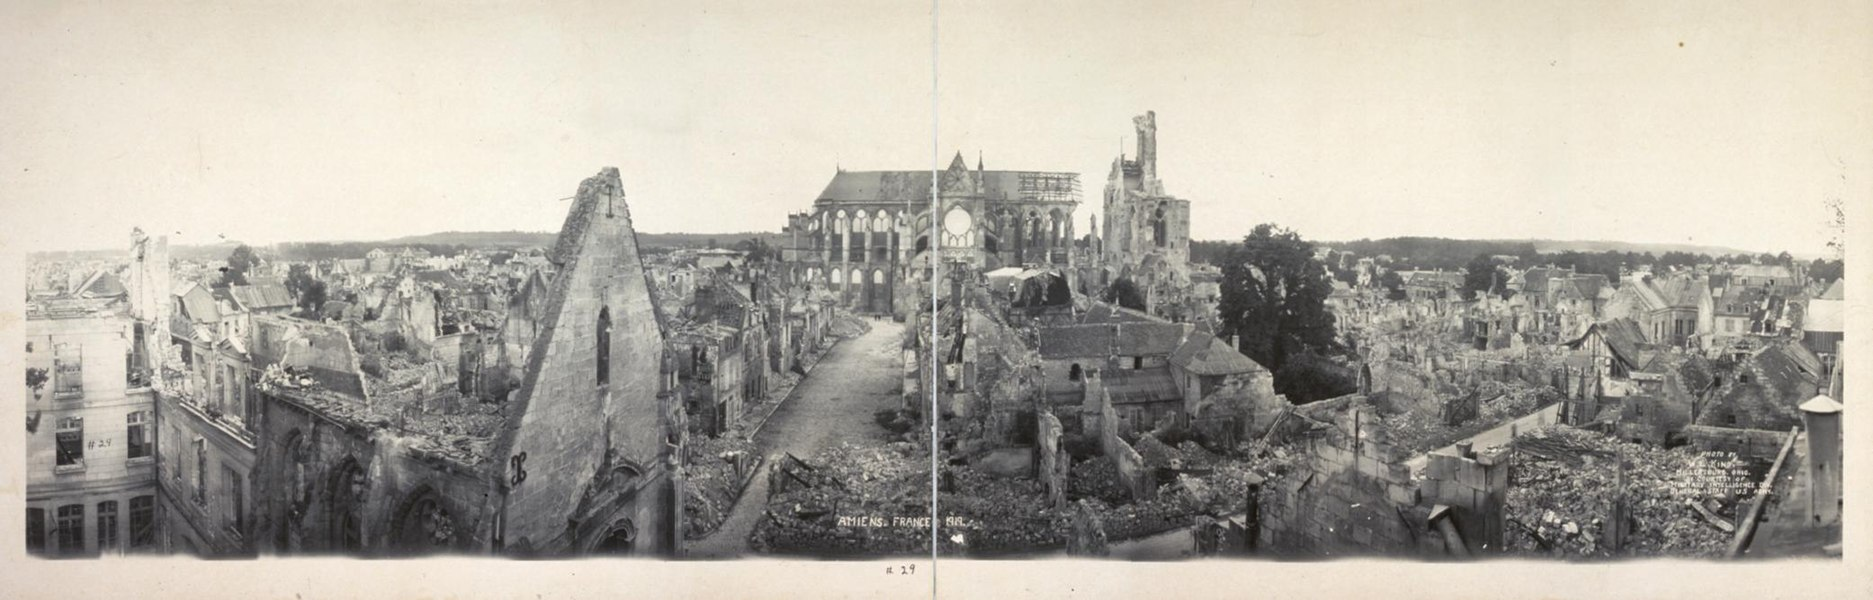 "Panorama of Soissons, France, in 1919, heavily damaged during World War I. In the middle is the cathedral. The picture was taken approximately from the current ""rue du Collège"" in Soissons, looking primarily South. The photograph was incorrectly captioned ""Amiens"", which is another French city (see File talk:Soissons, France, 1919 panorama.jpg#Amiens or Soissons? for (French) explanations about the fact that this actually is Soissons)."